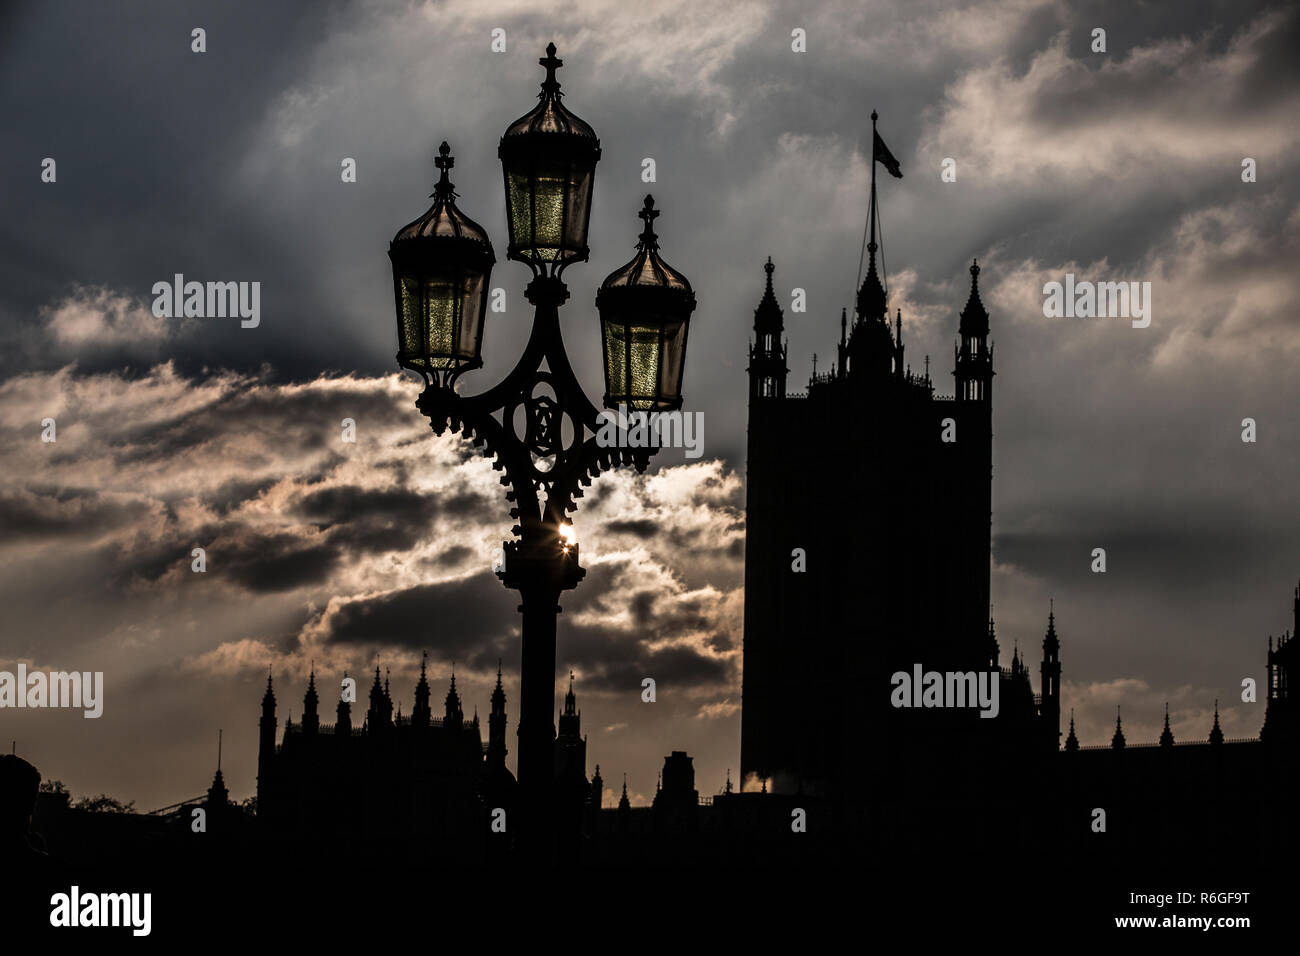 Dark skies at dusk sit over The Houses of Parliament, Westminster, London, United Kingdom - Stock Image